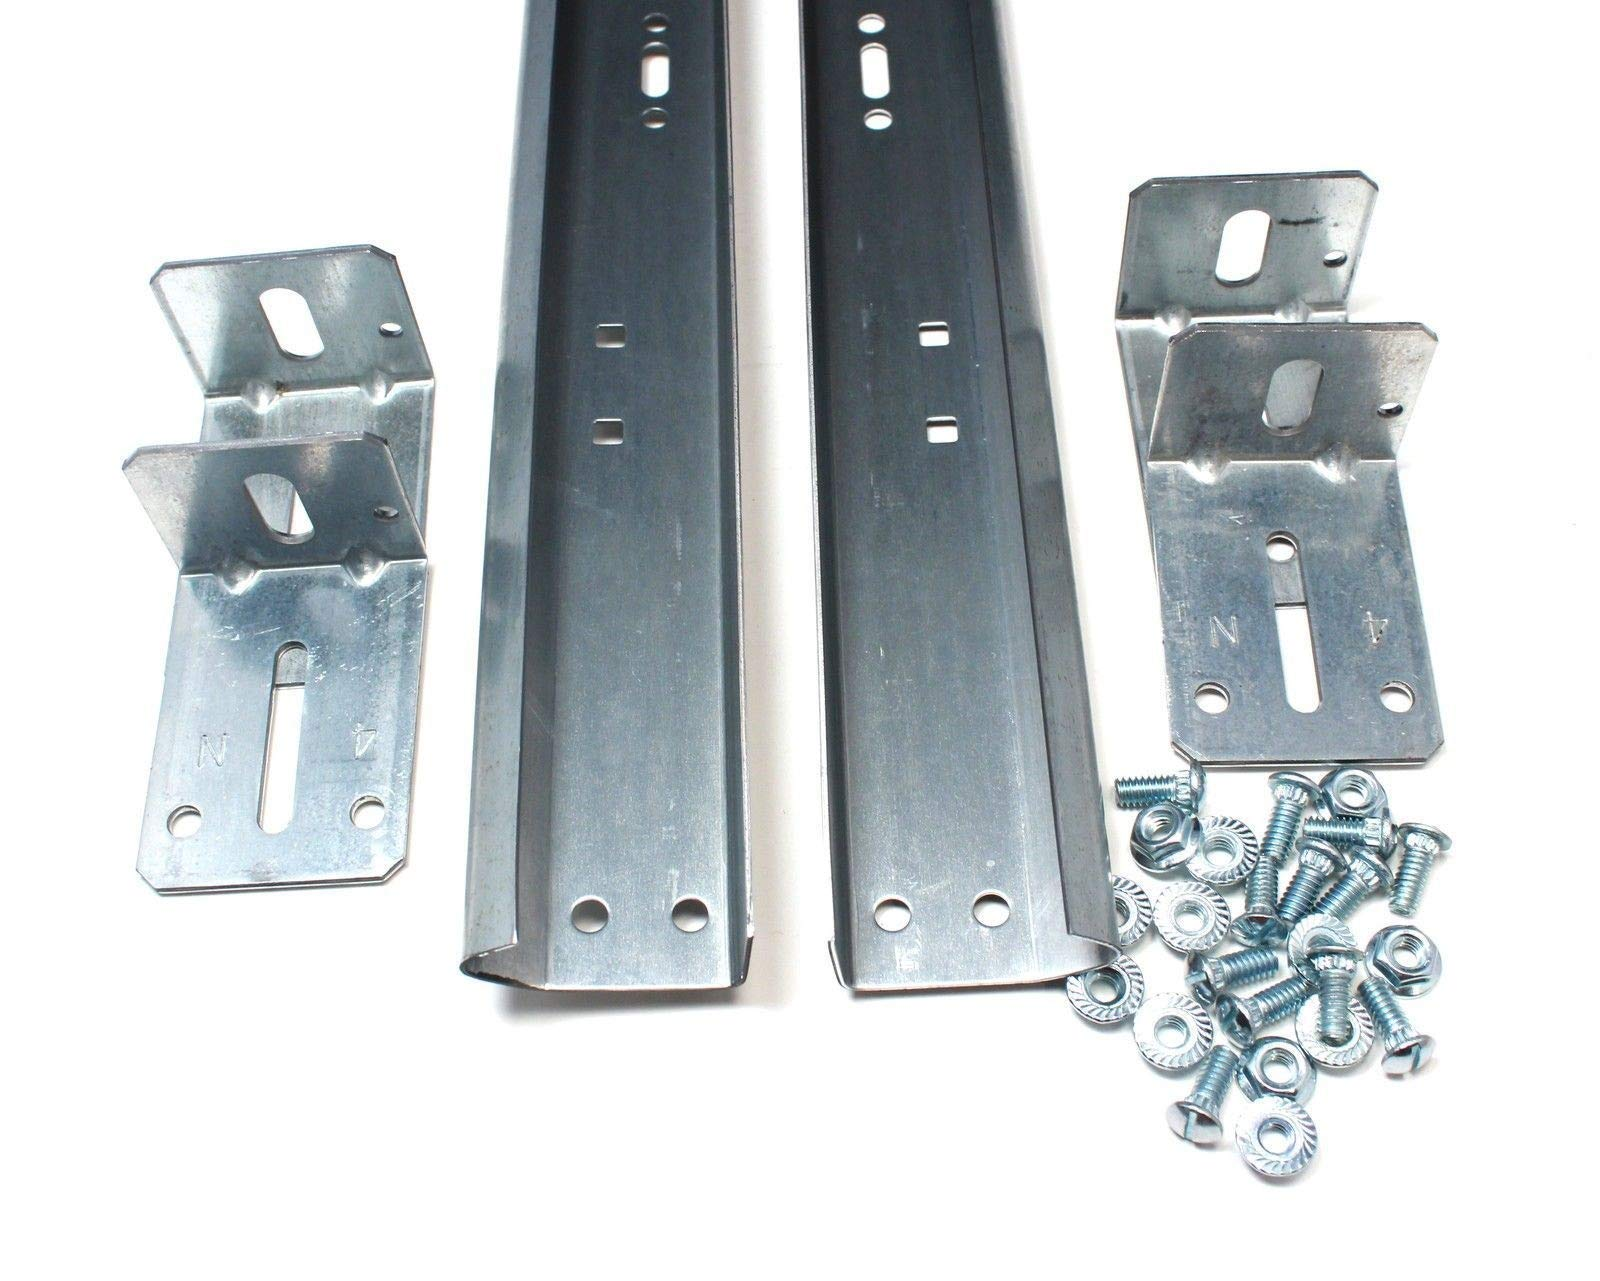 Garage Door Track for 7' High Door - Pair of Vertical Sections Length: 76'' Standart Lenght